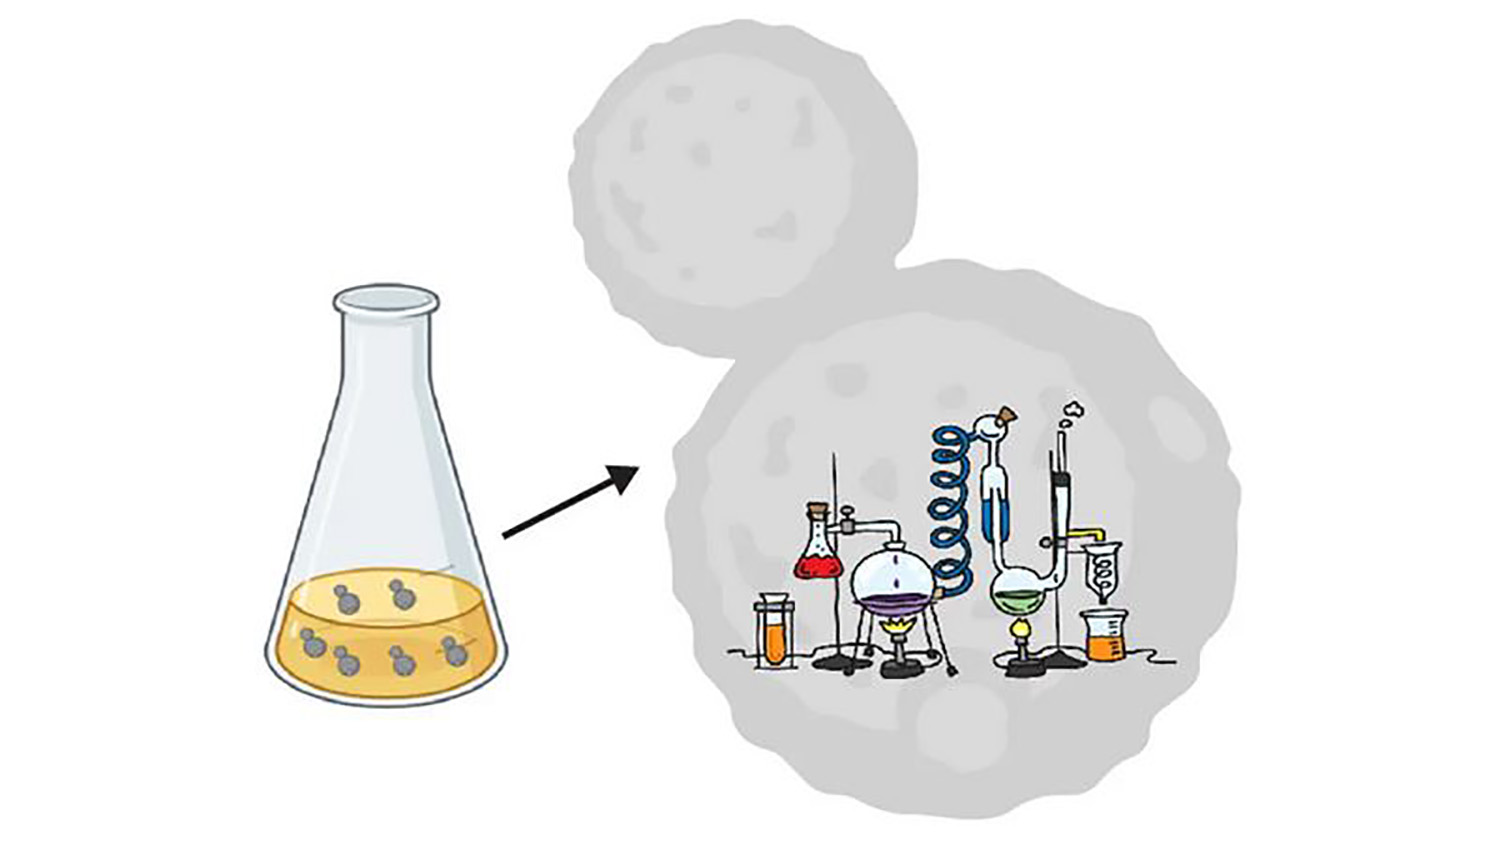 Using yeast cells to study gene regulation conceptual drawing